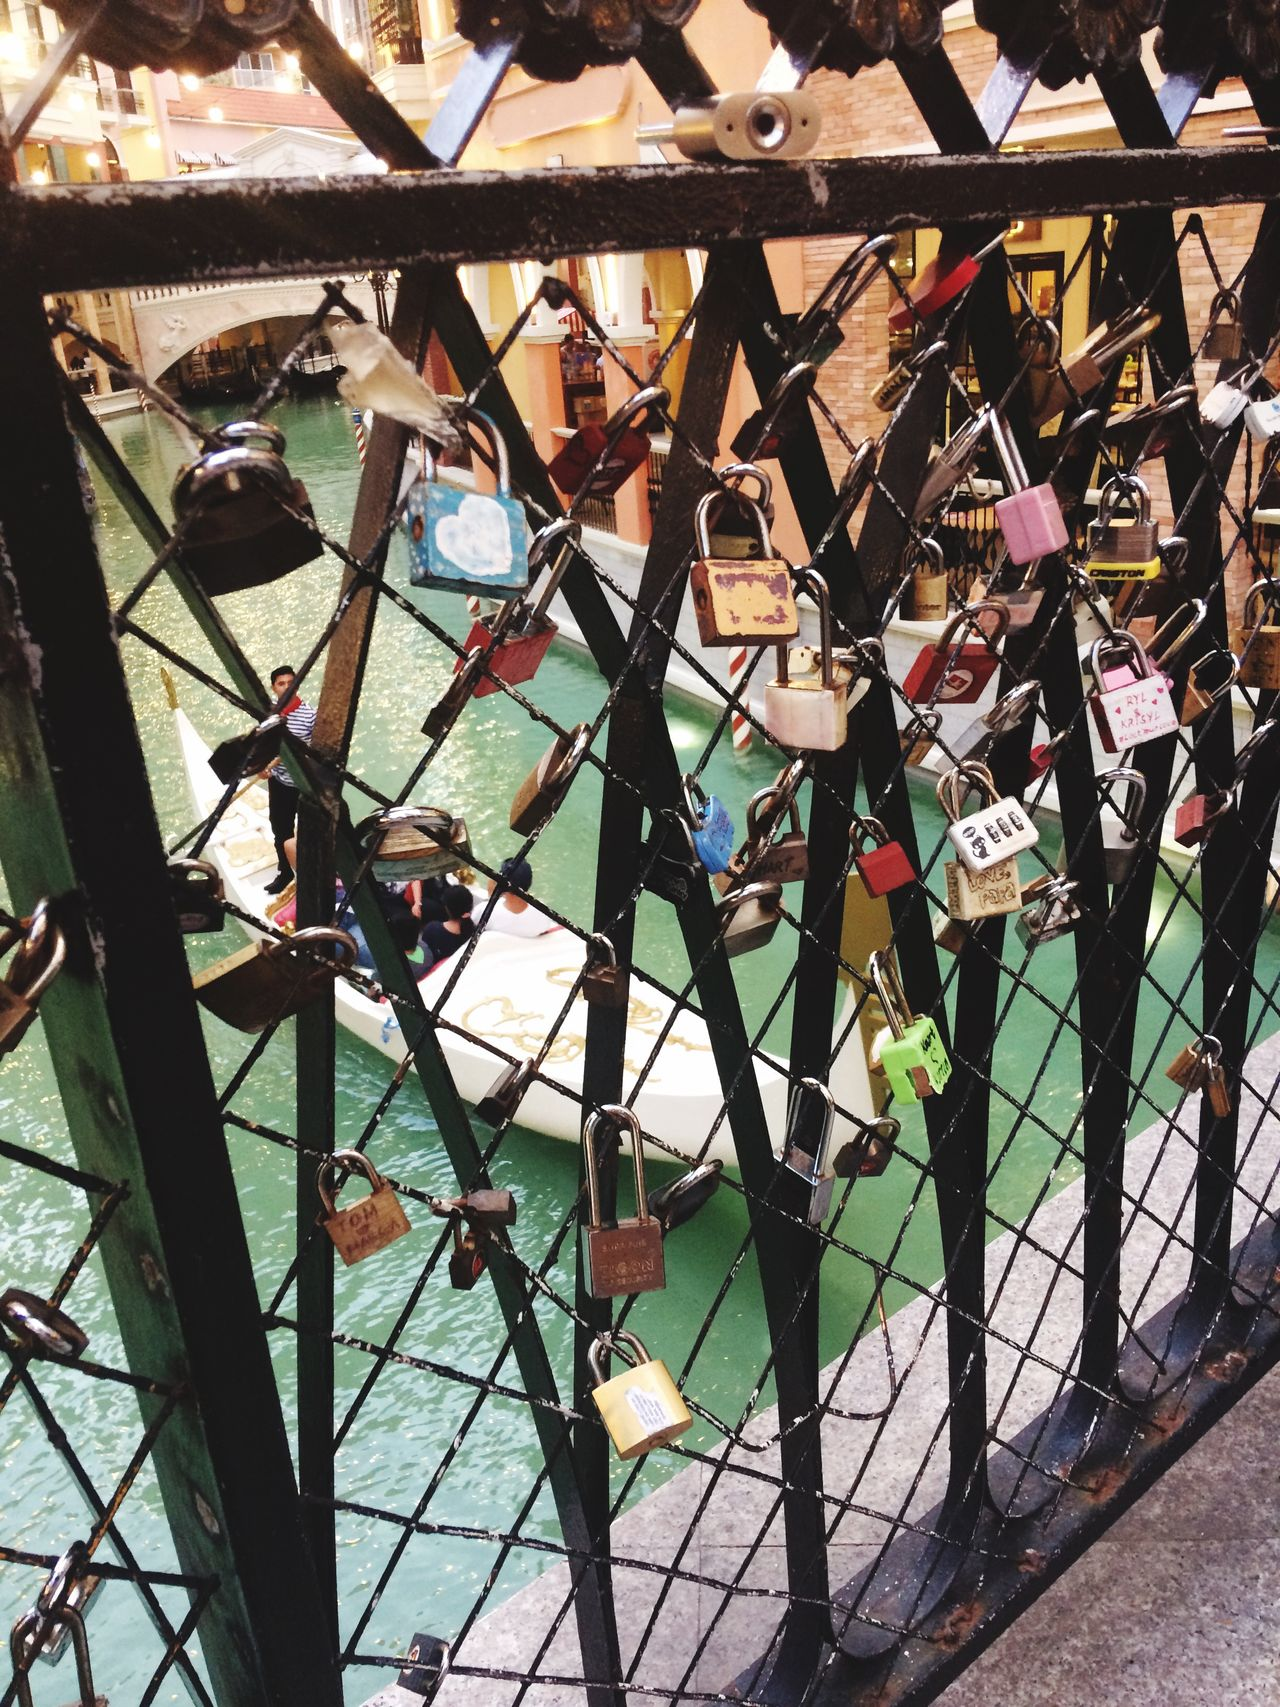 Makati City, Philippines Adventure Boat Water Venice Lookalike Vacay Family Time Philippines Locks Chainlink Fence Romance